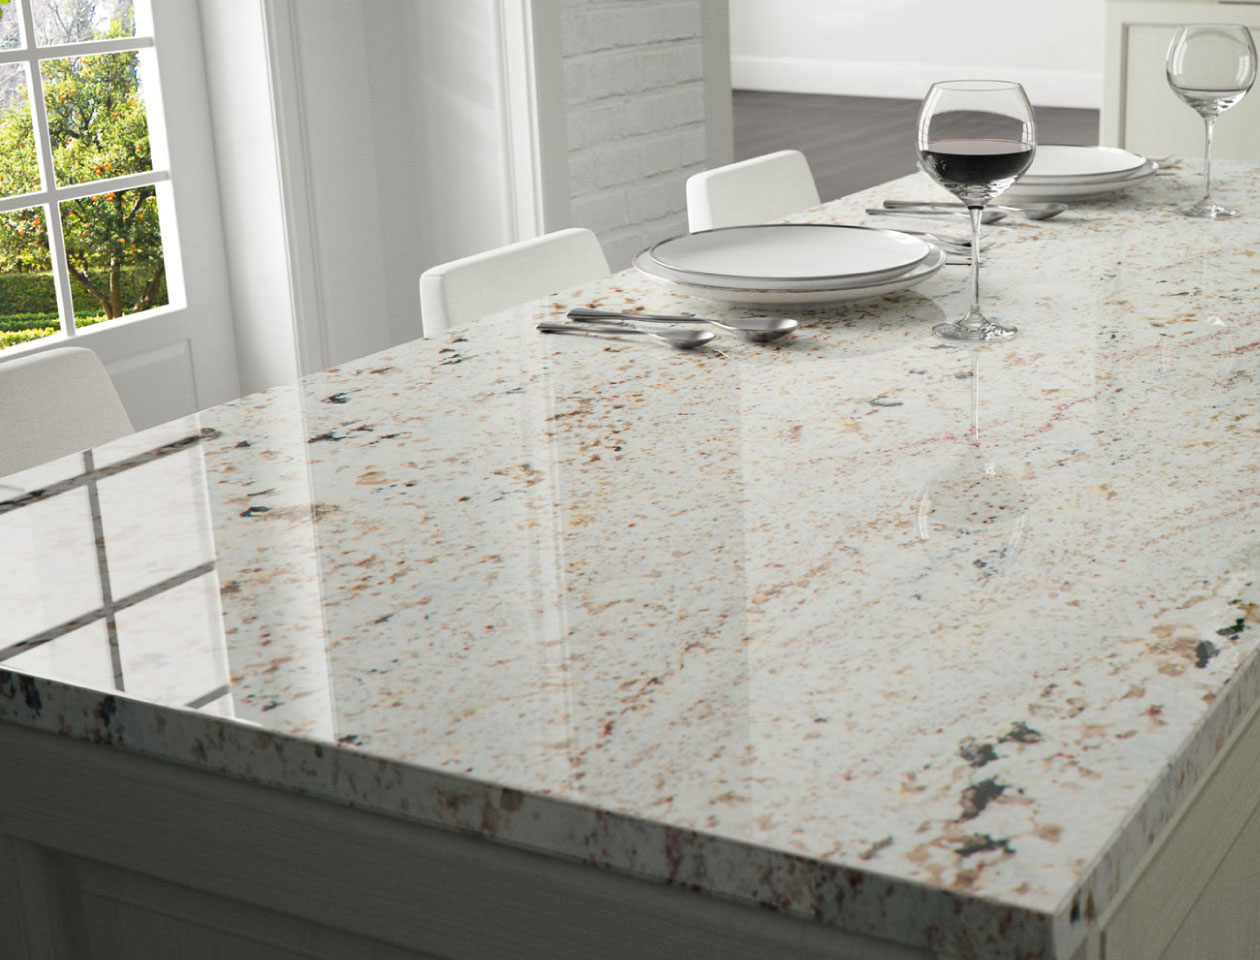 Can You Bleach Granite Countertops Choosing The Right Countertop For Your Home Granite